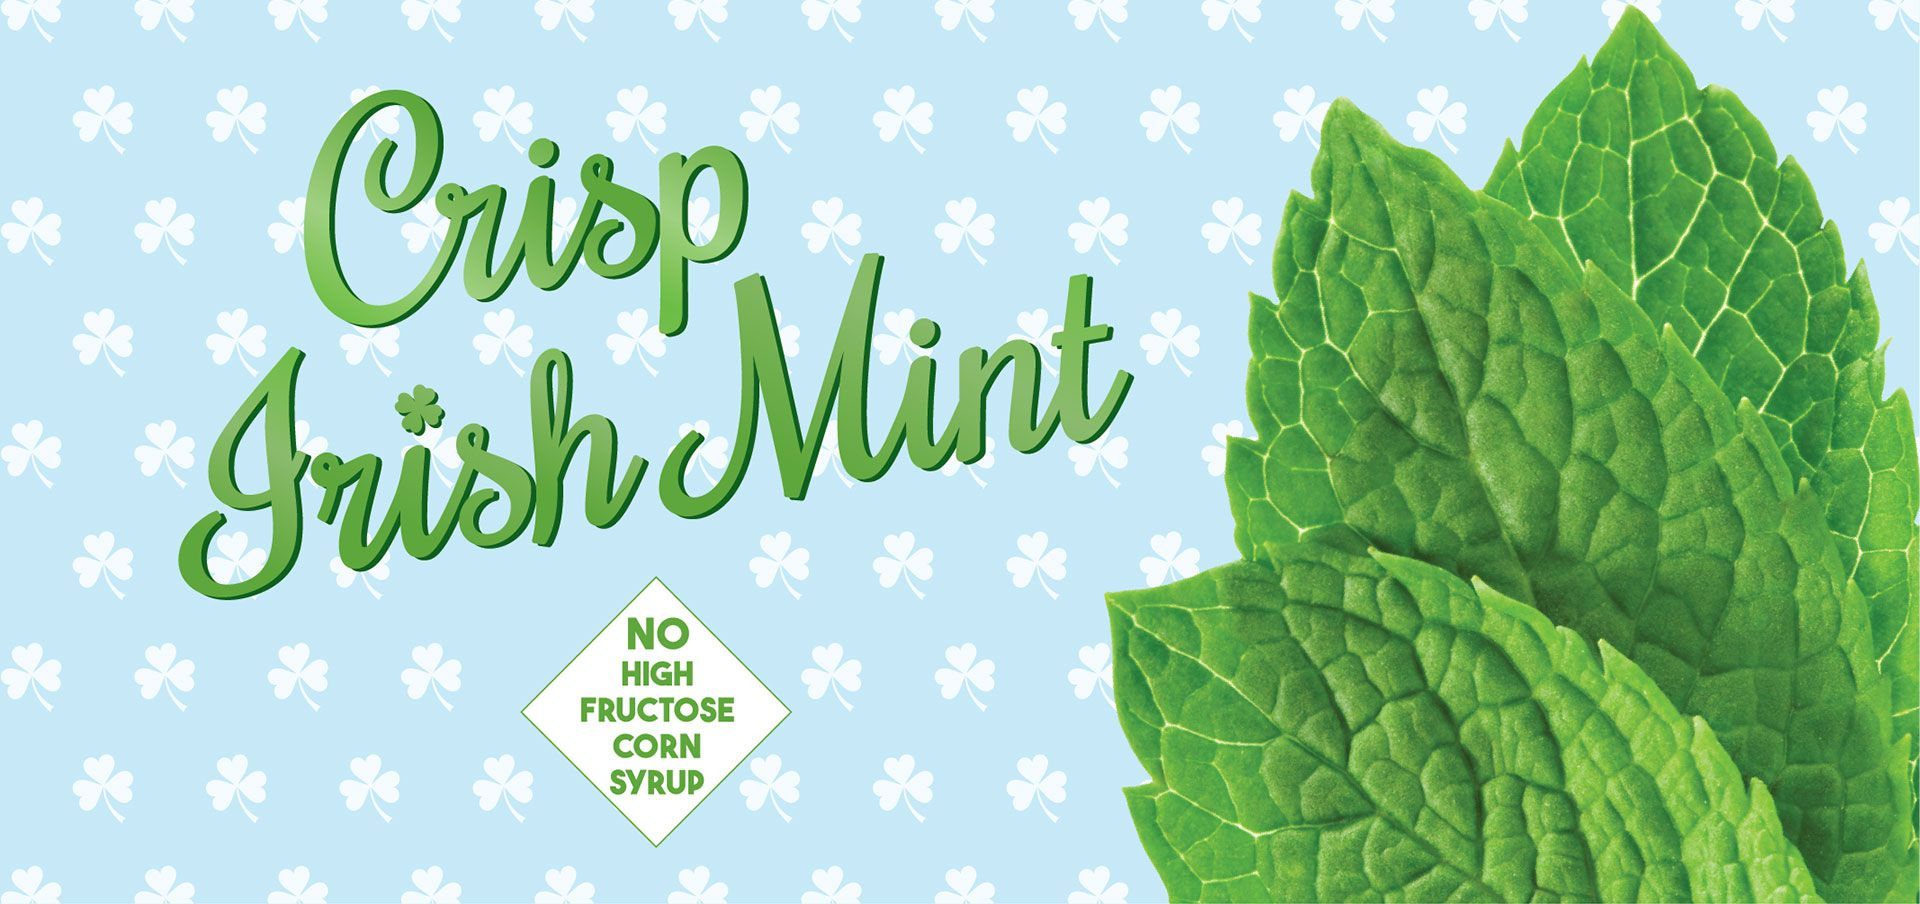 crisp irish mint label image